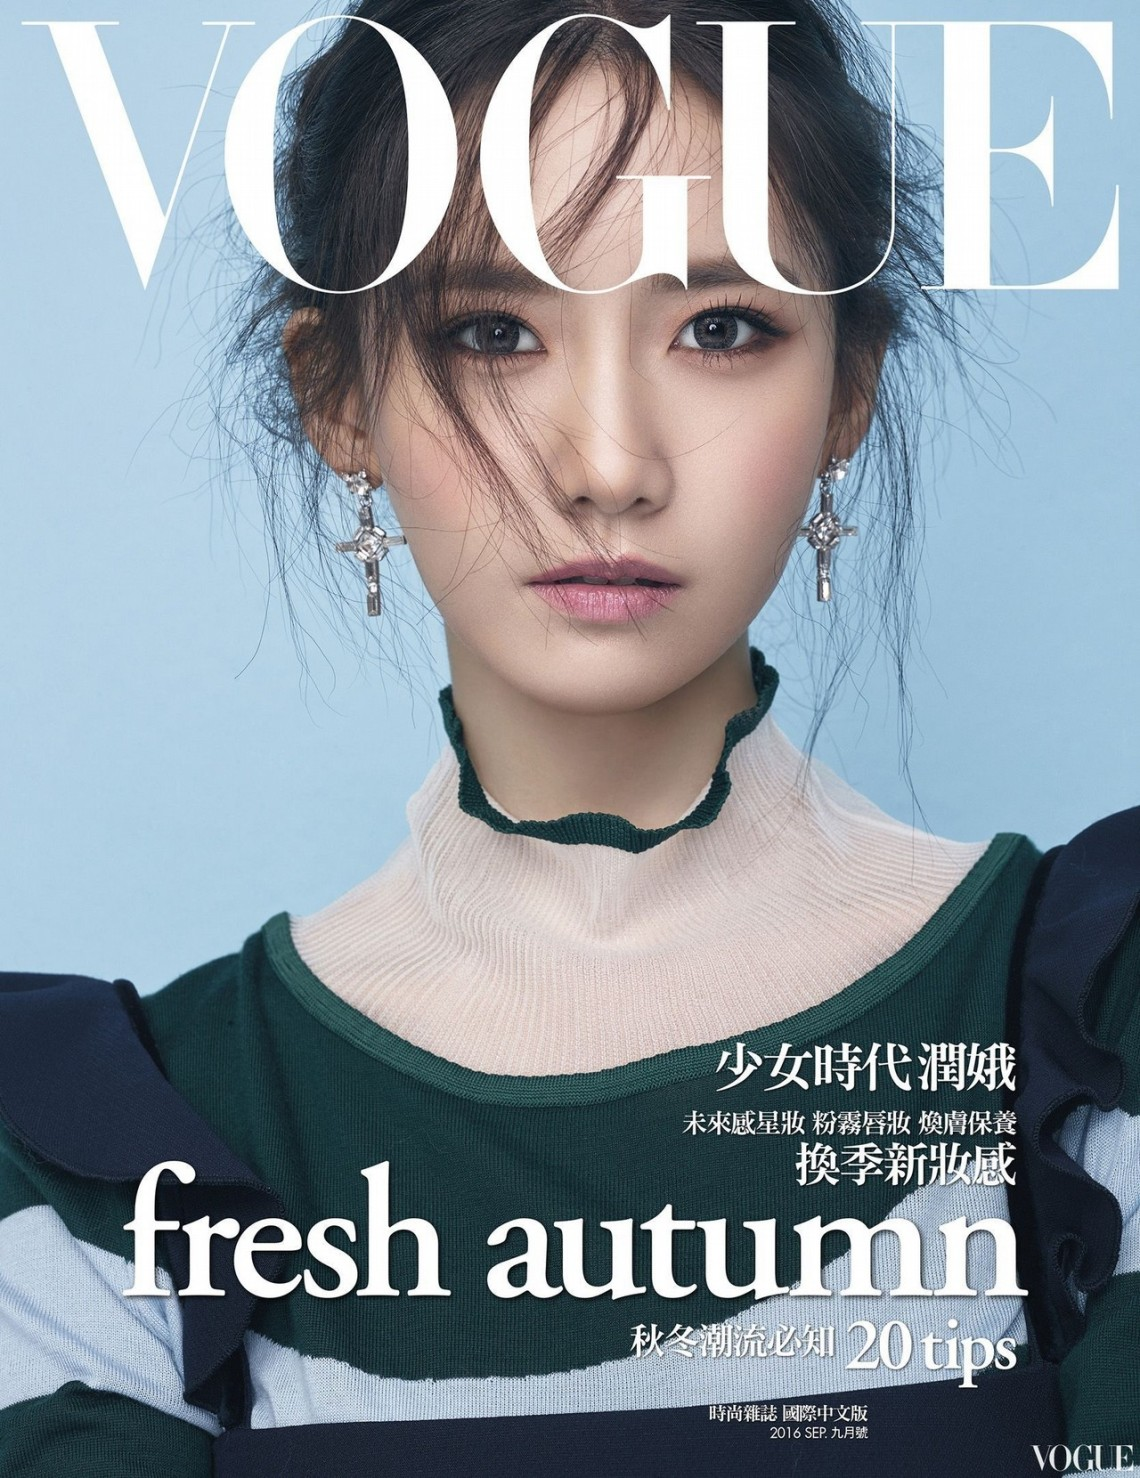 Yoona for Vogue Taiwan 06 Drama Chronicles